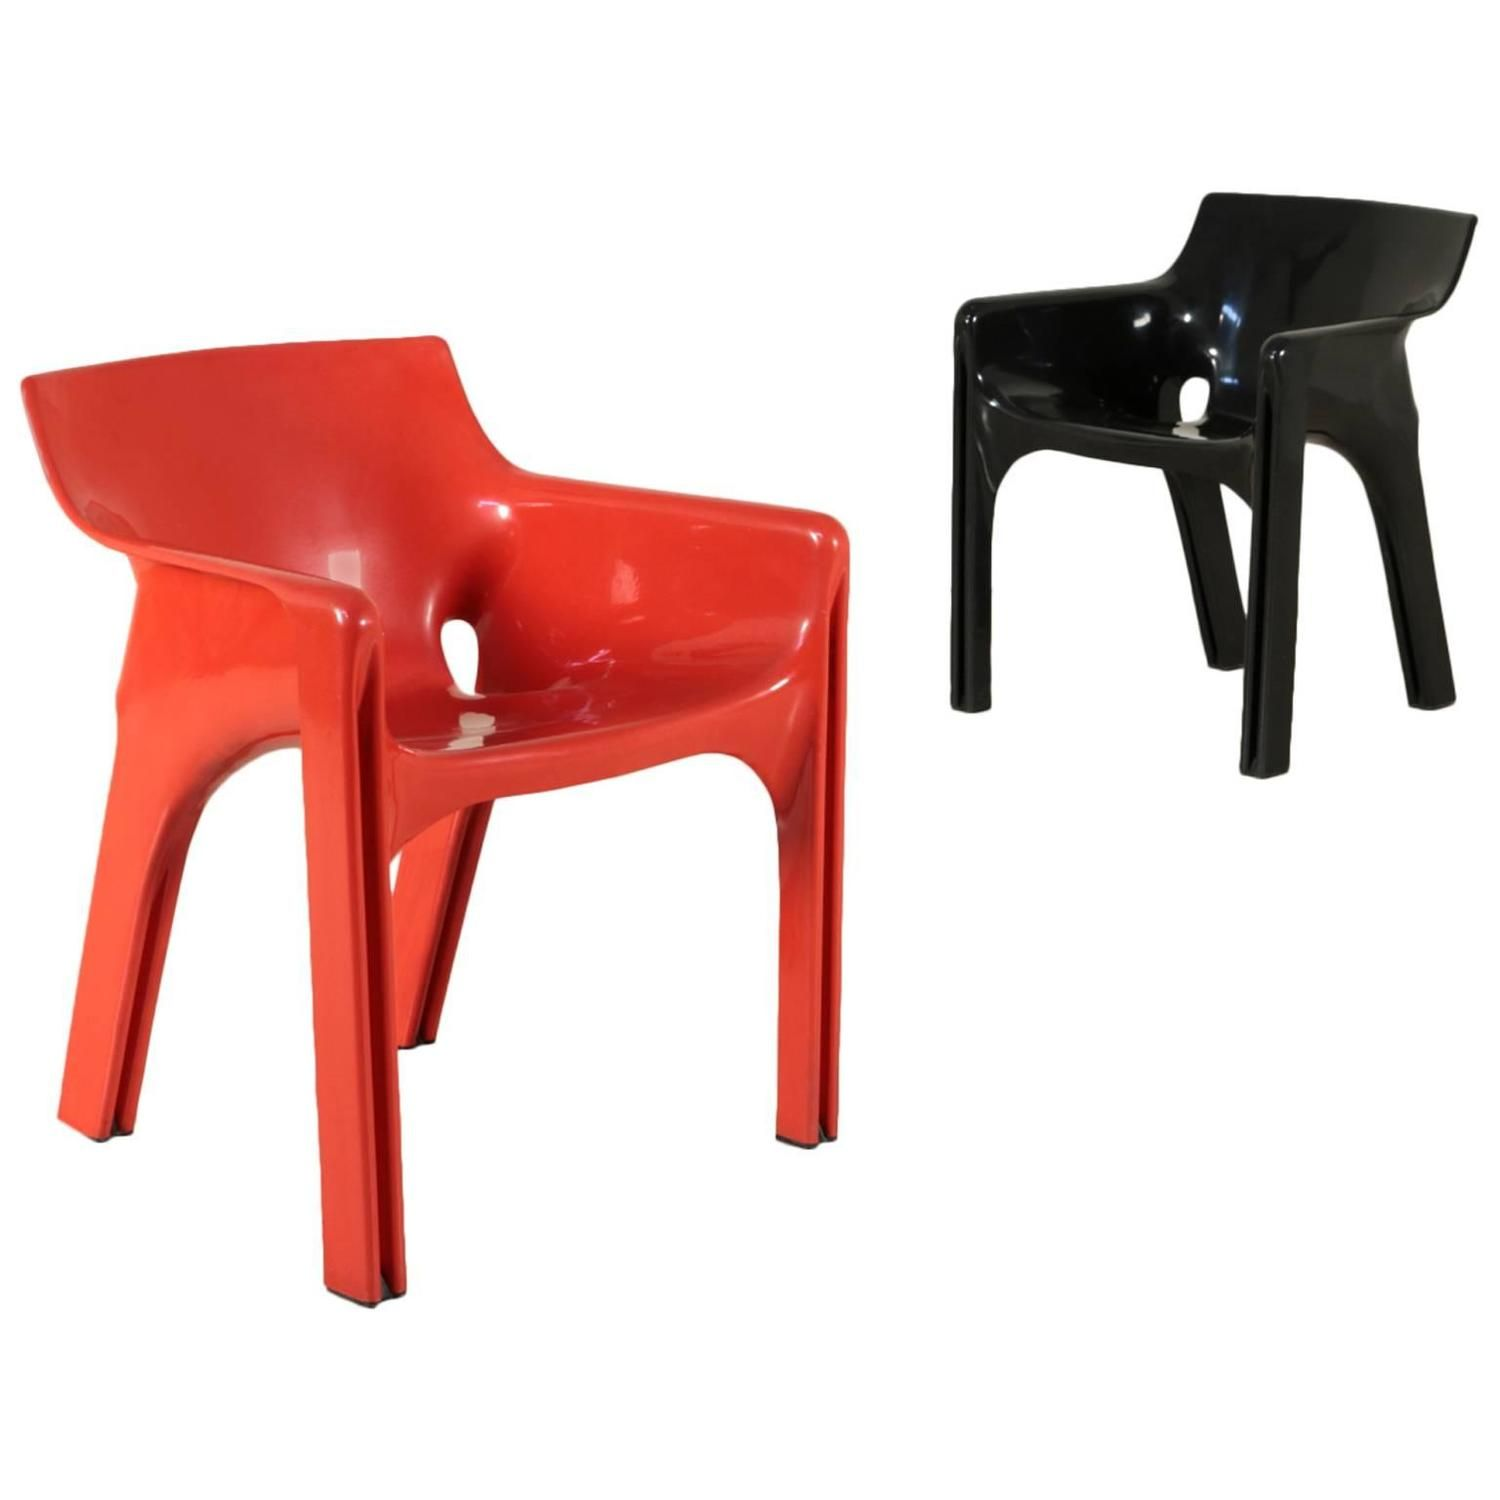 chairs base side chair plastic wooden dowel modern molded dsw pin eames